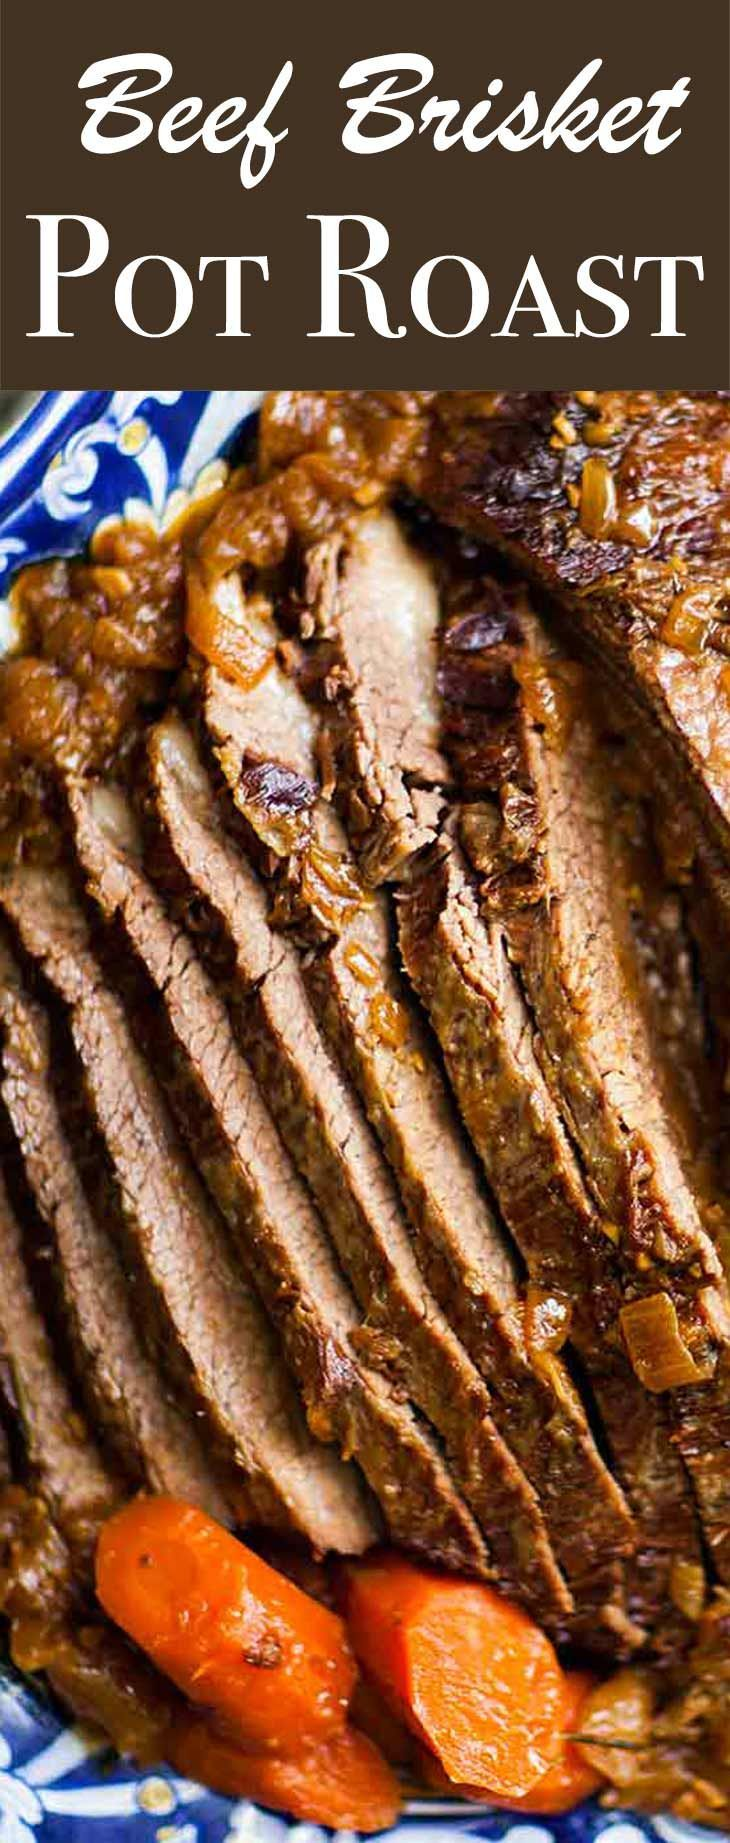 EASY Beef Brisket Pot Roast, slowly cooked with onions, garlic, herbs, and carrots #dinner #potroast #paleo #glutenfree